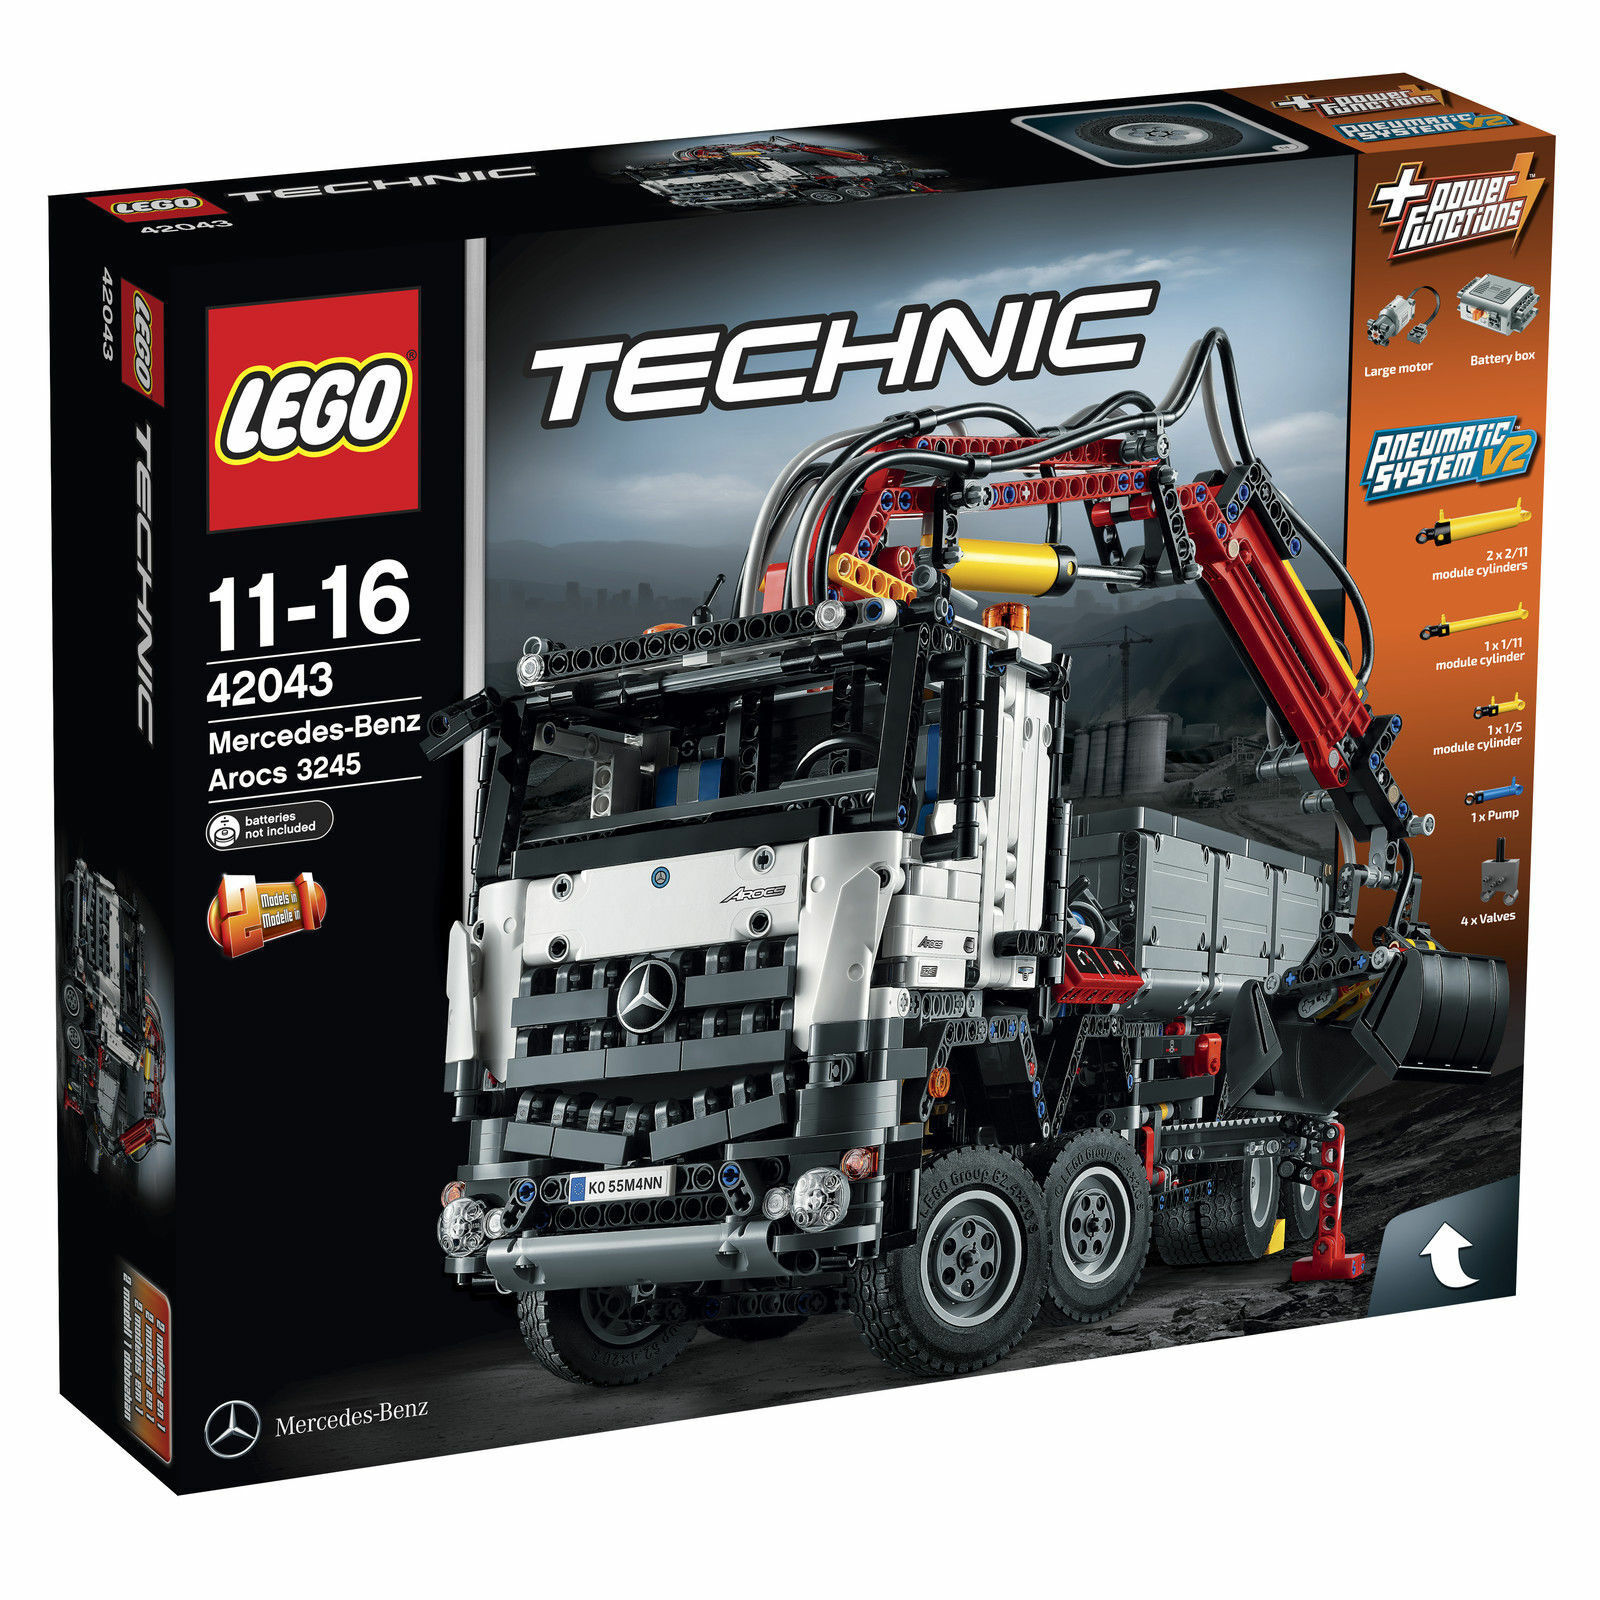 LEGO TECHNIC 42043 Mercedes-Benz Arocs